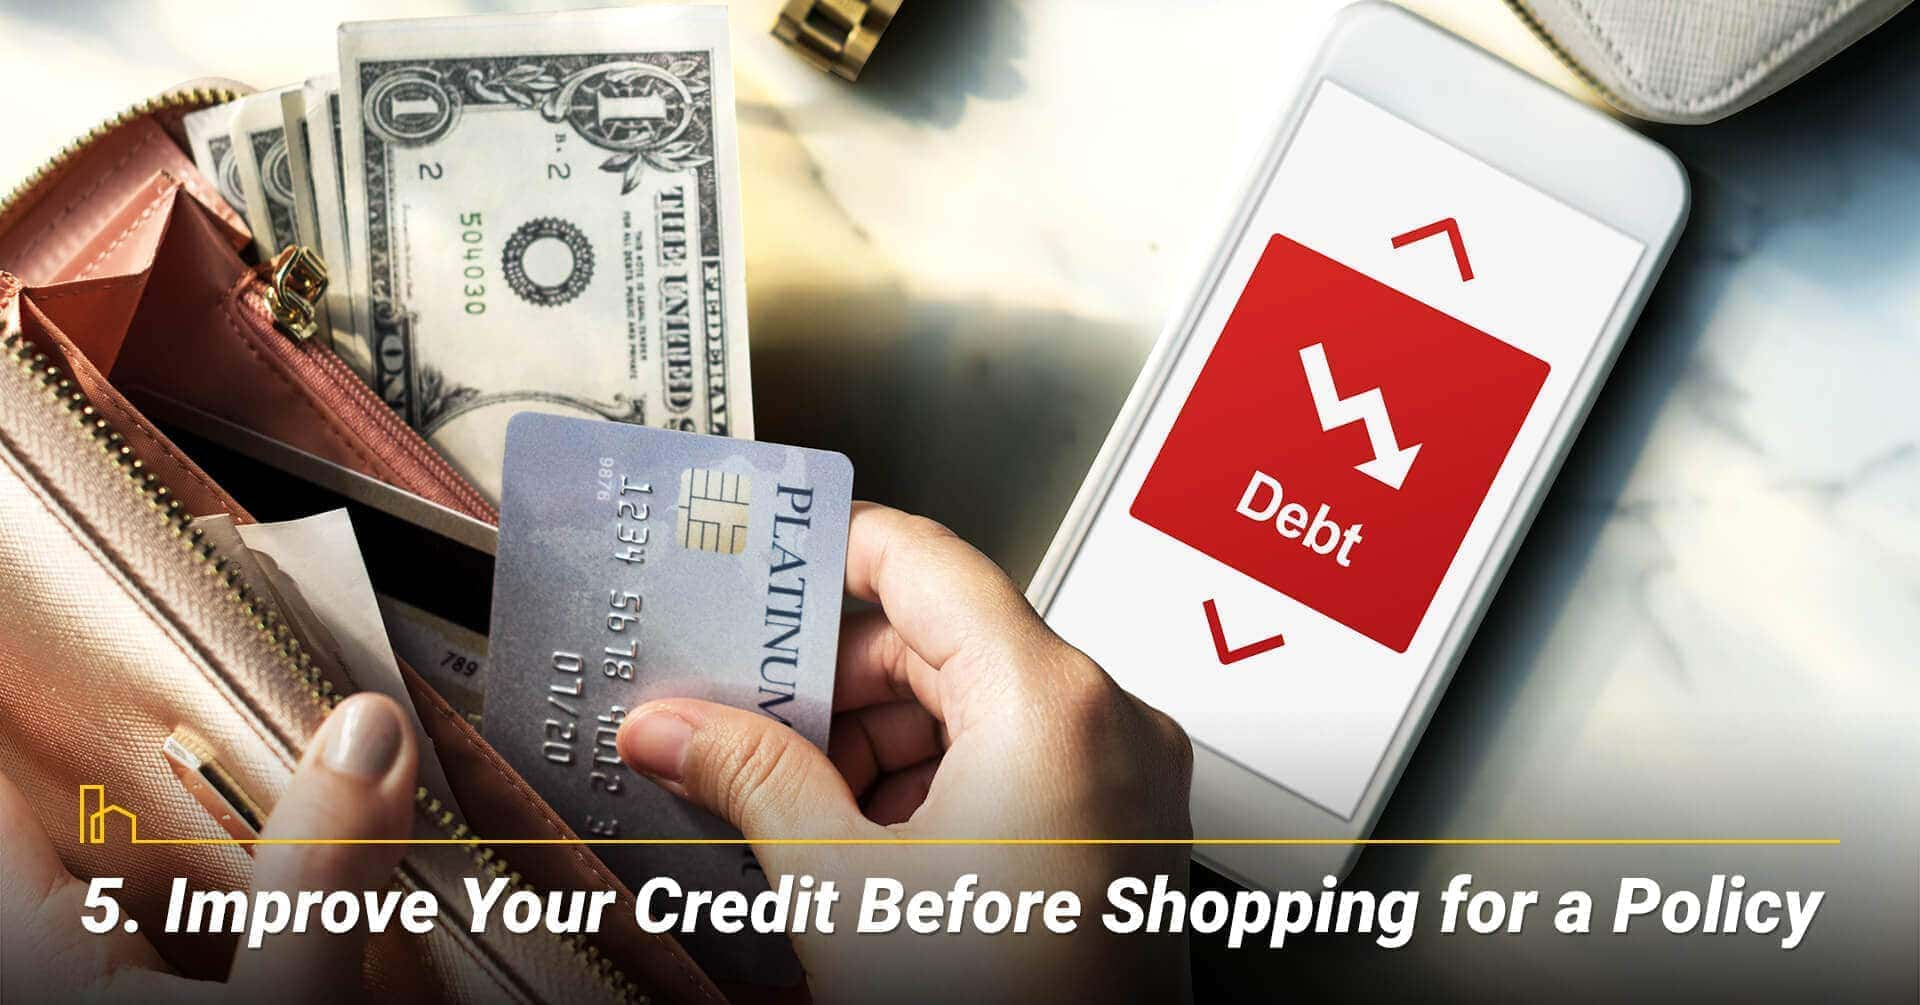 Improve Your Credit Before Shopping for a Policy, improve your credit score for better rate